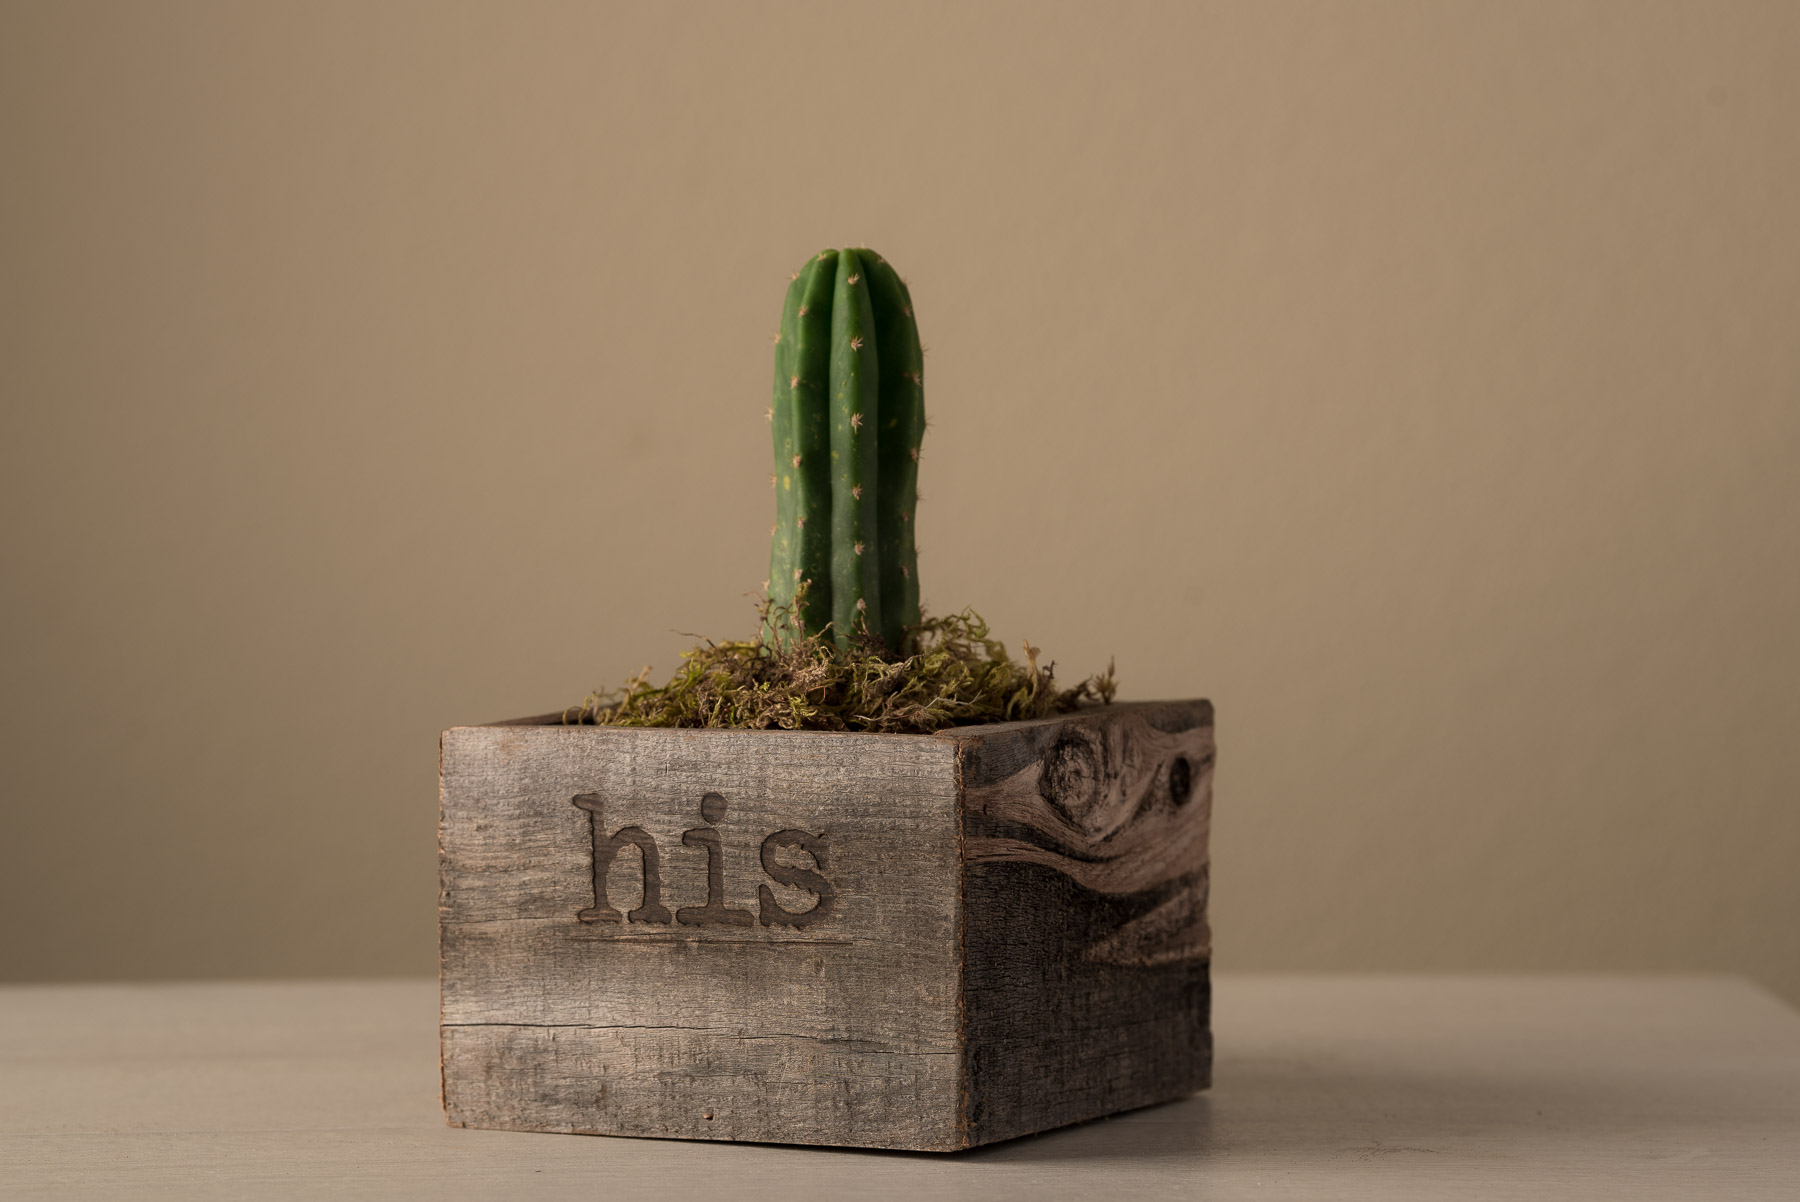 His hers reclaimed succulent set wtray pacific royal all succulent wall decor kokiak reclaimed container reclaimed party succulent tray royal reclaimed wooden planters 12 redwood succulent centerpiece amipublicfo Images